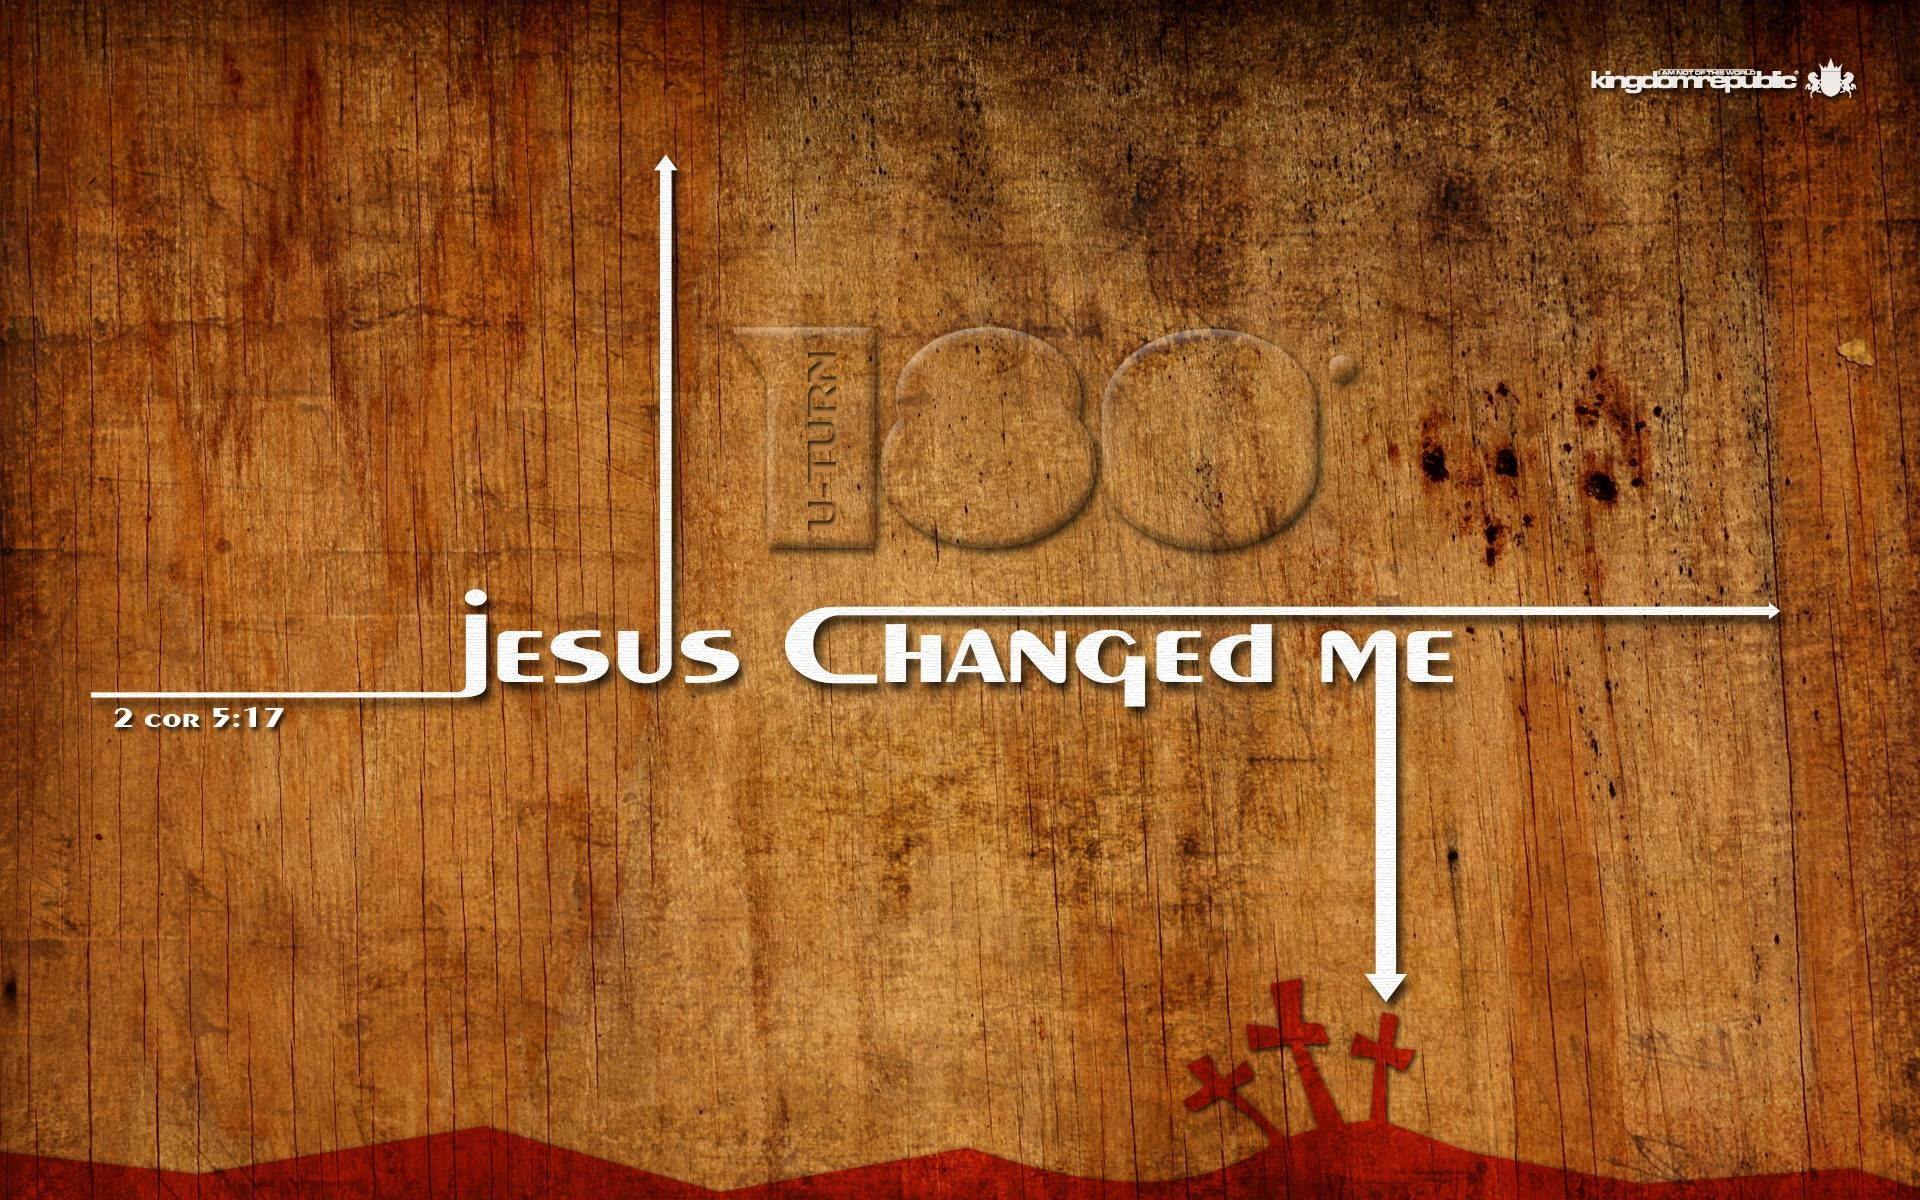 Free Jesus Wallpapers HD Android Apps on Google Play 1920×1024 Jesus  Wallpaper Hd (